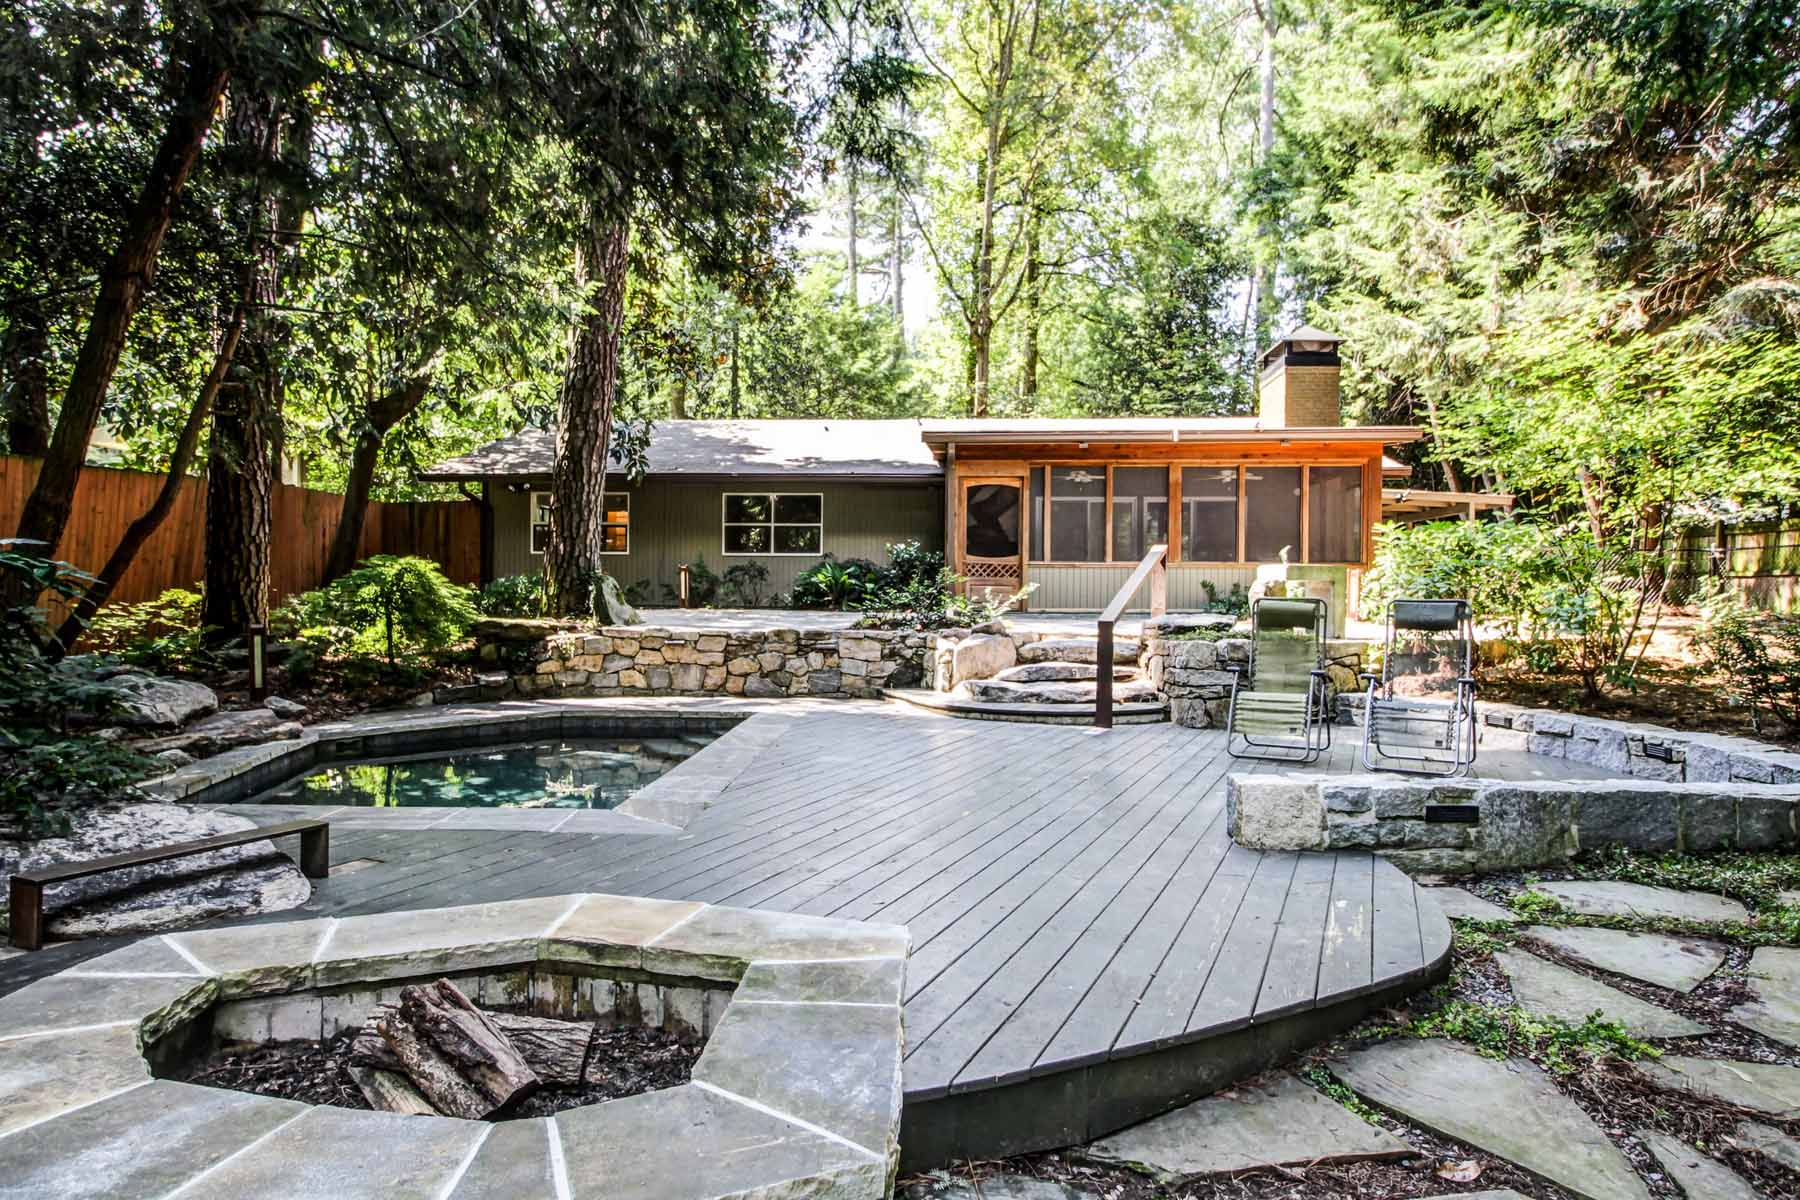 Частный односемейный дом для того Продажа на Vacation in your own home in this true Mid-Century Modern on acre+ retreat! 1811 E Clifton Road Druid Hills, Atlanta, Джорджия, 30307 Соединенные Штаты